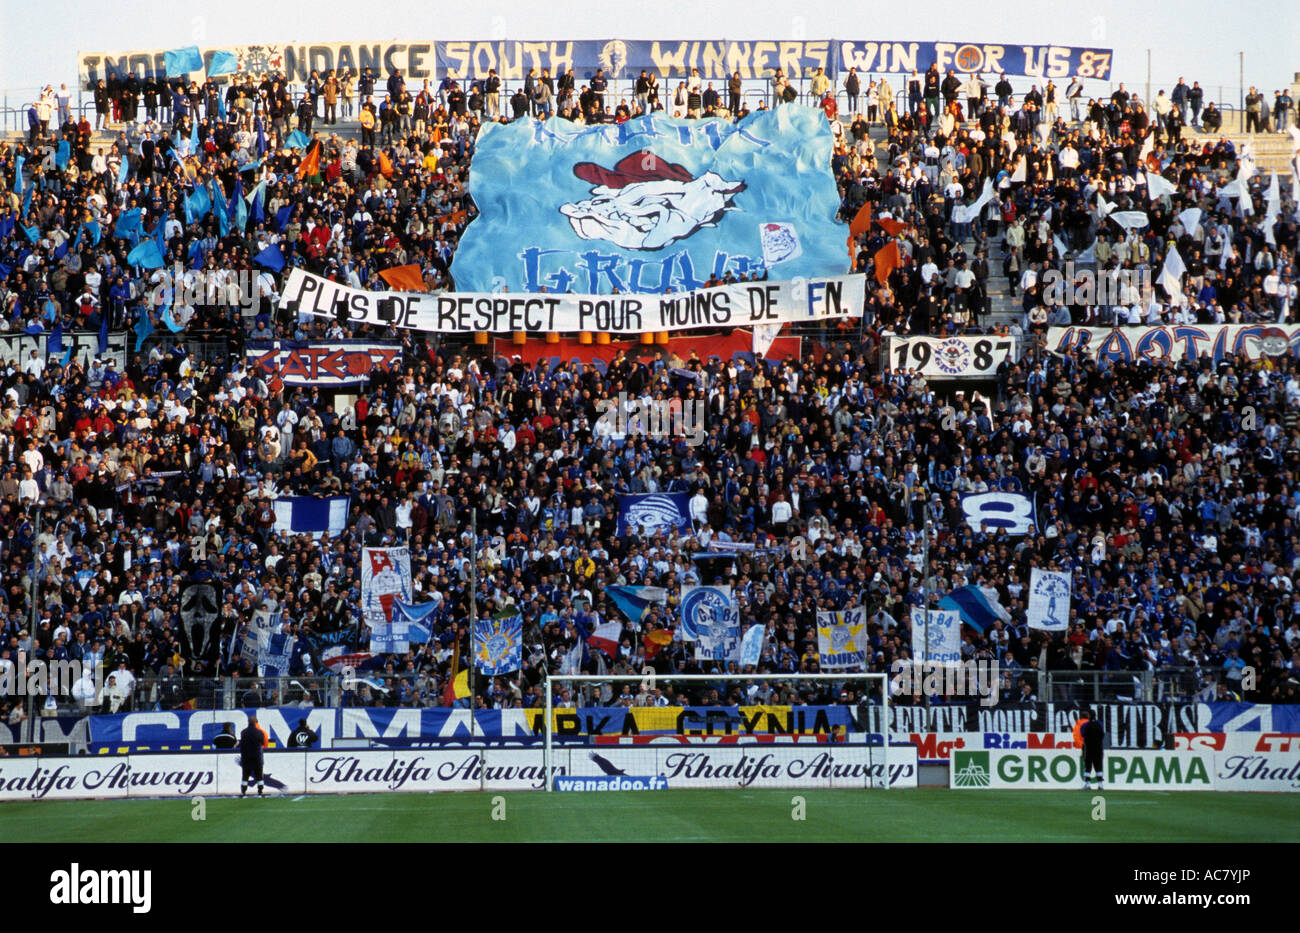 Supporters of Olympique Marseille at the Stade Velodrome, Marseille, France. - Stock Image